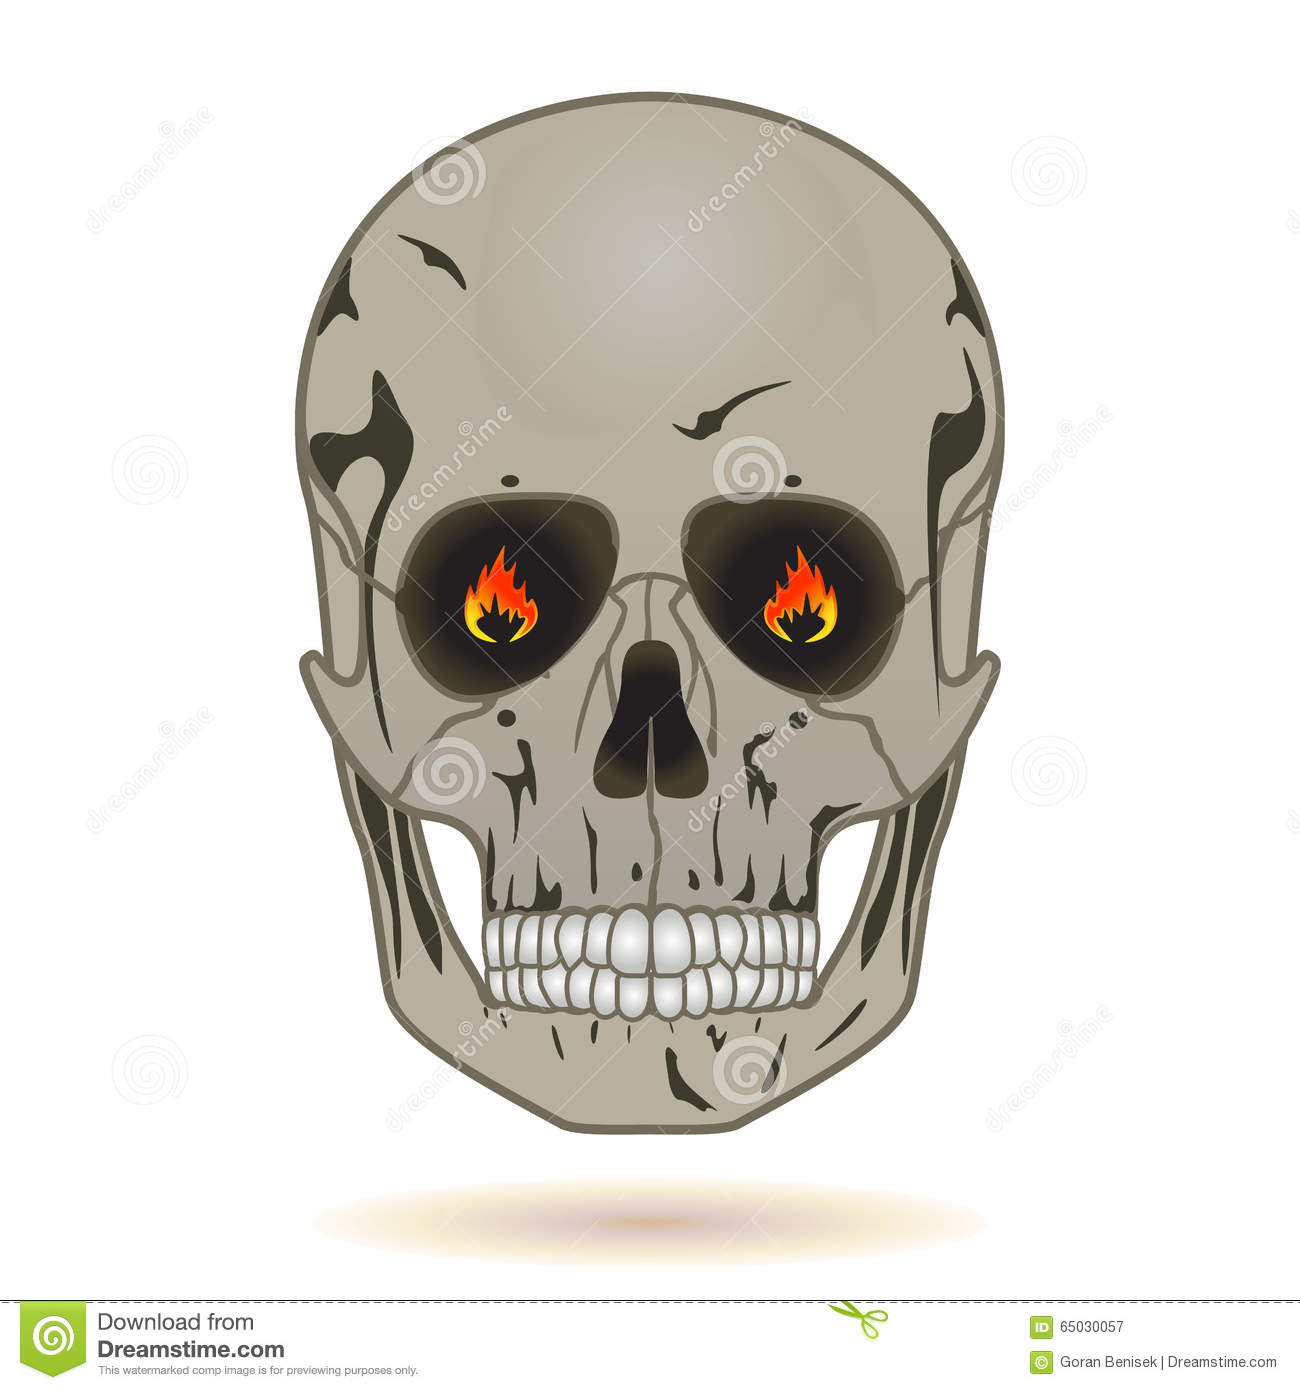 Human Skull Front View Stock Vector Illustration Of Horror 65030057